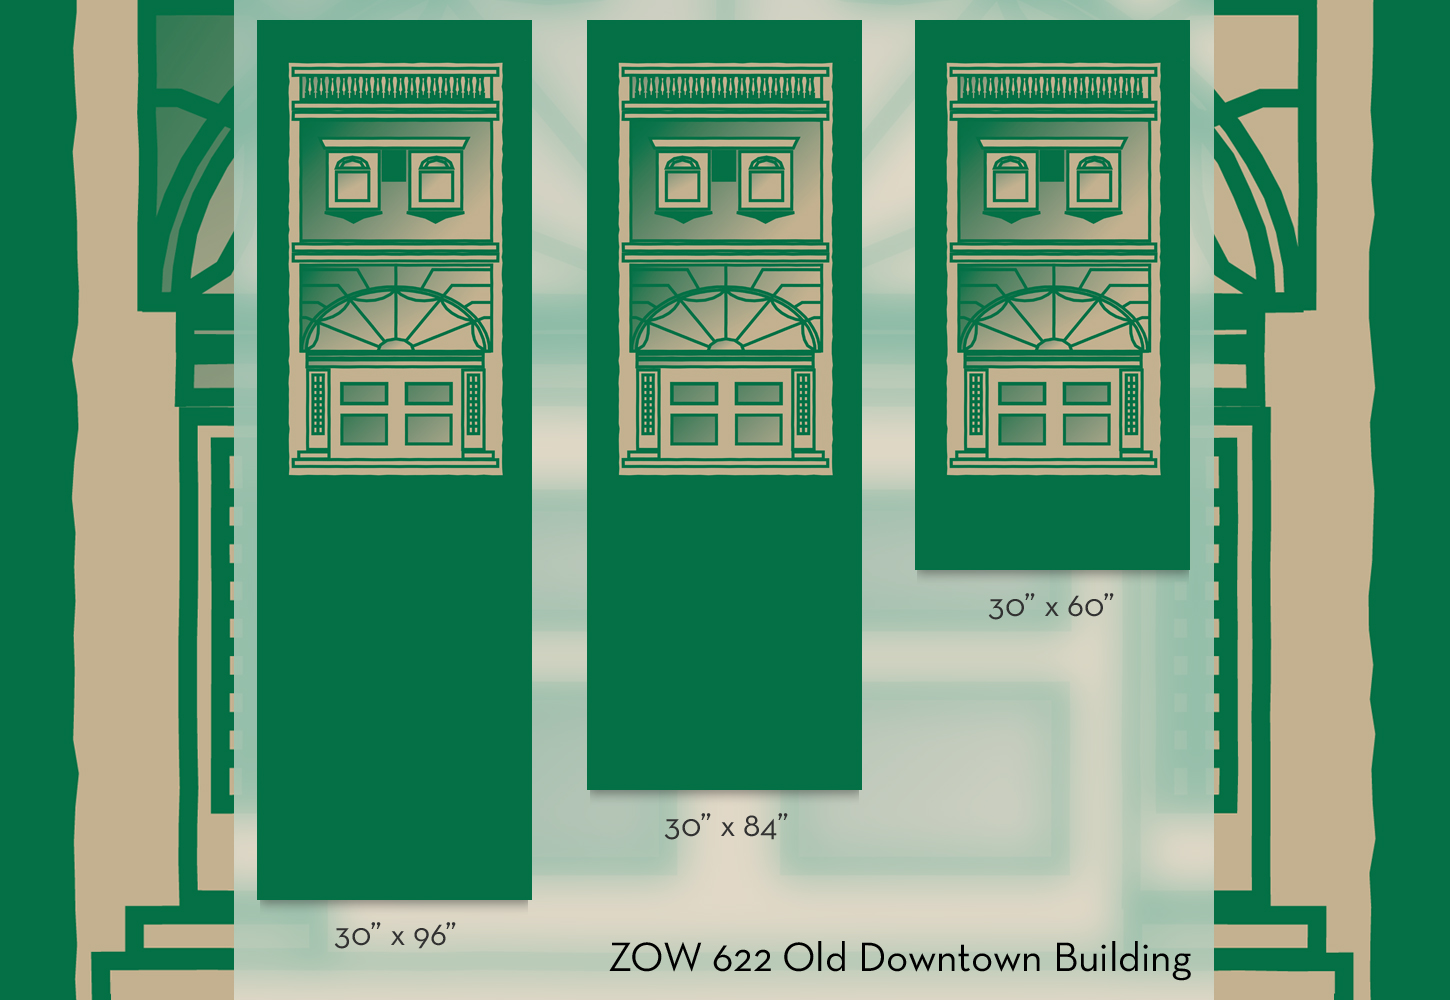 ZOW 622 Old Downtown Building